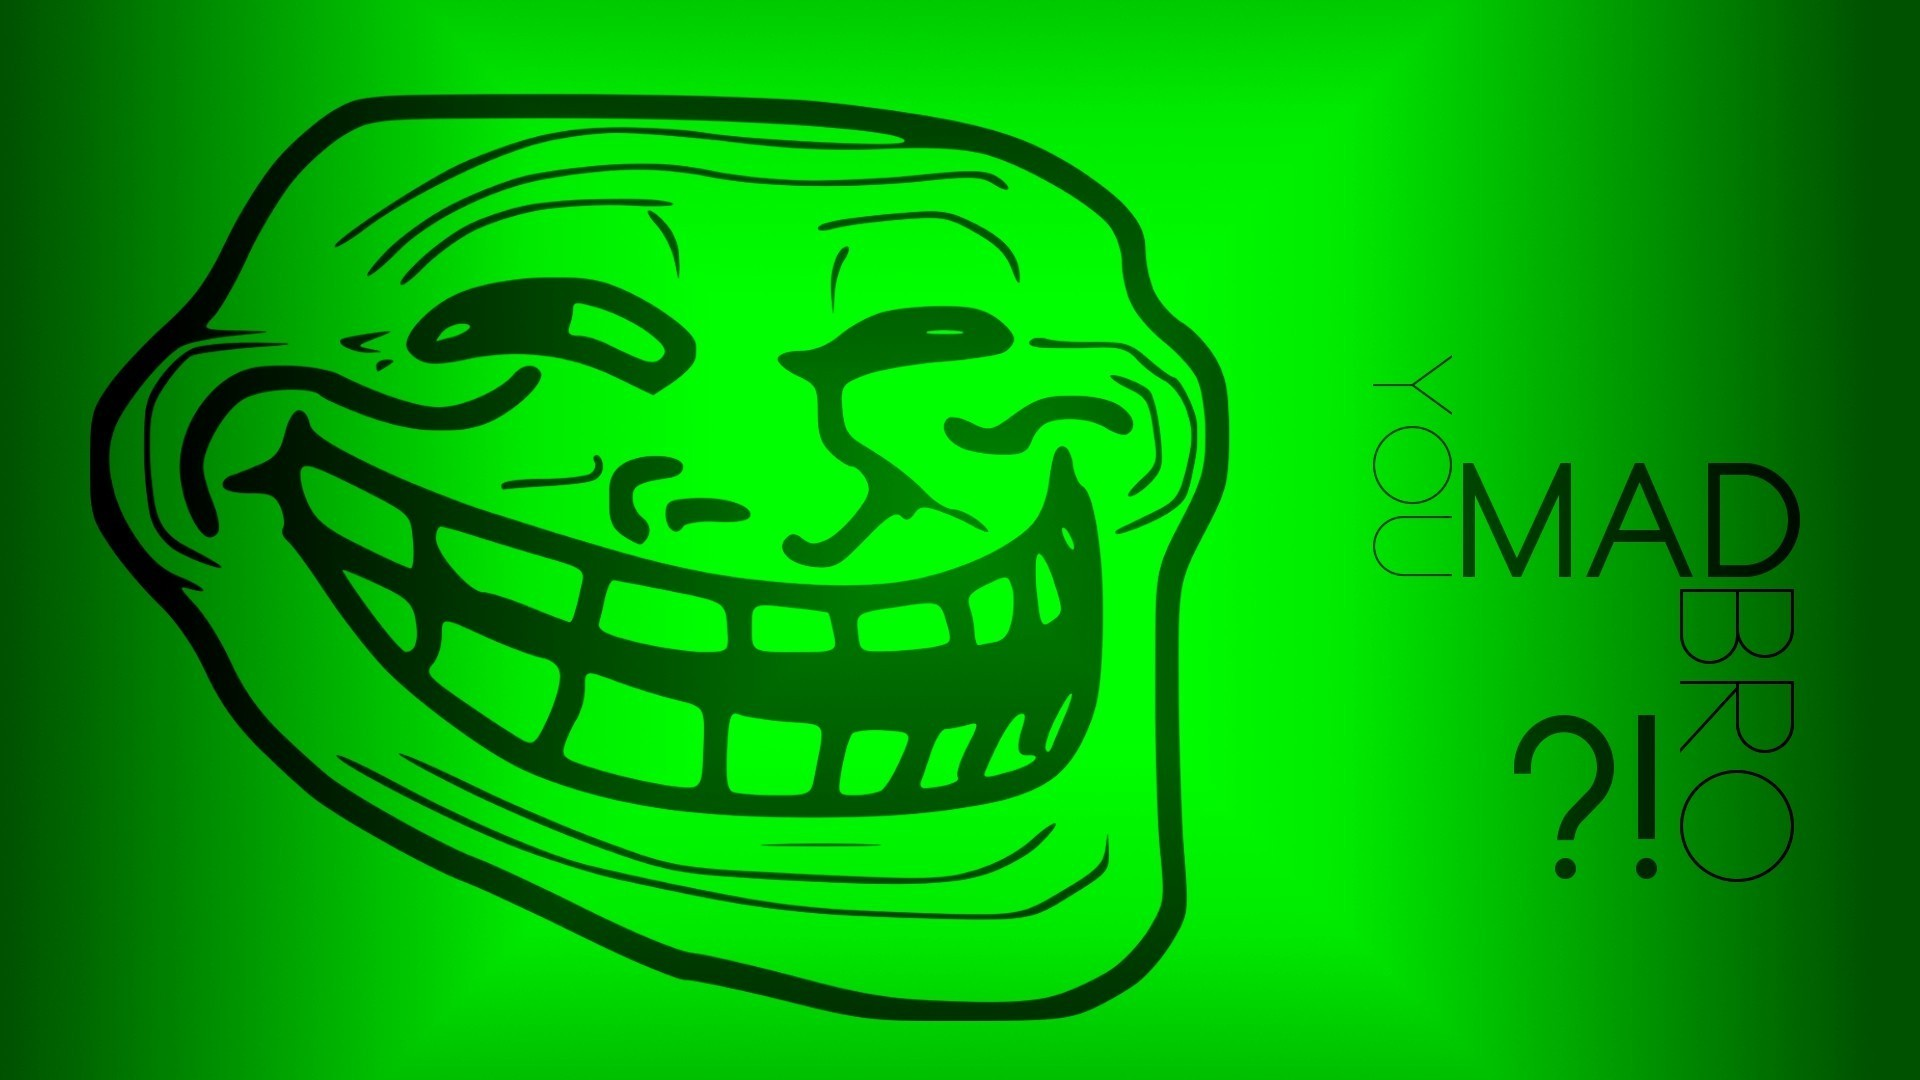 Trollface hd Wallpaper Internet Funny Green Trollface